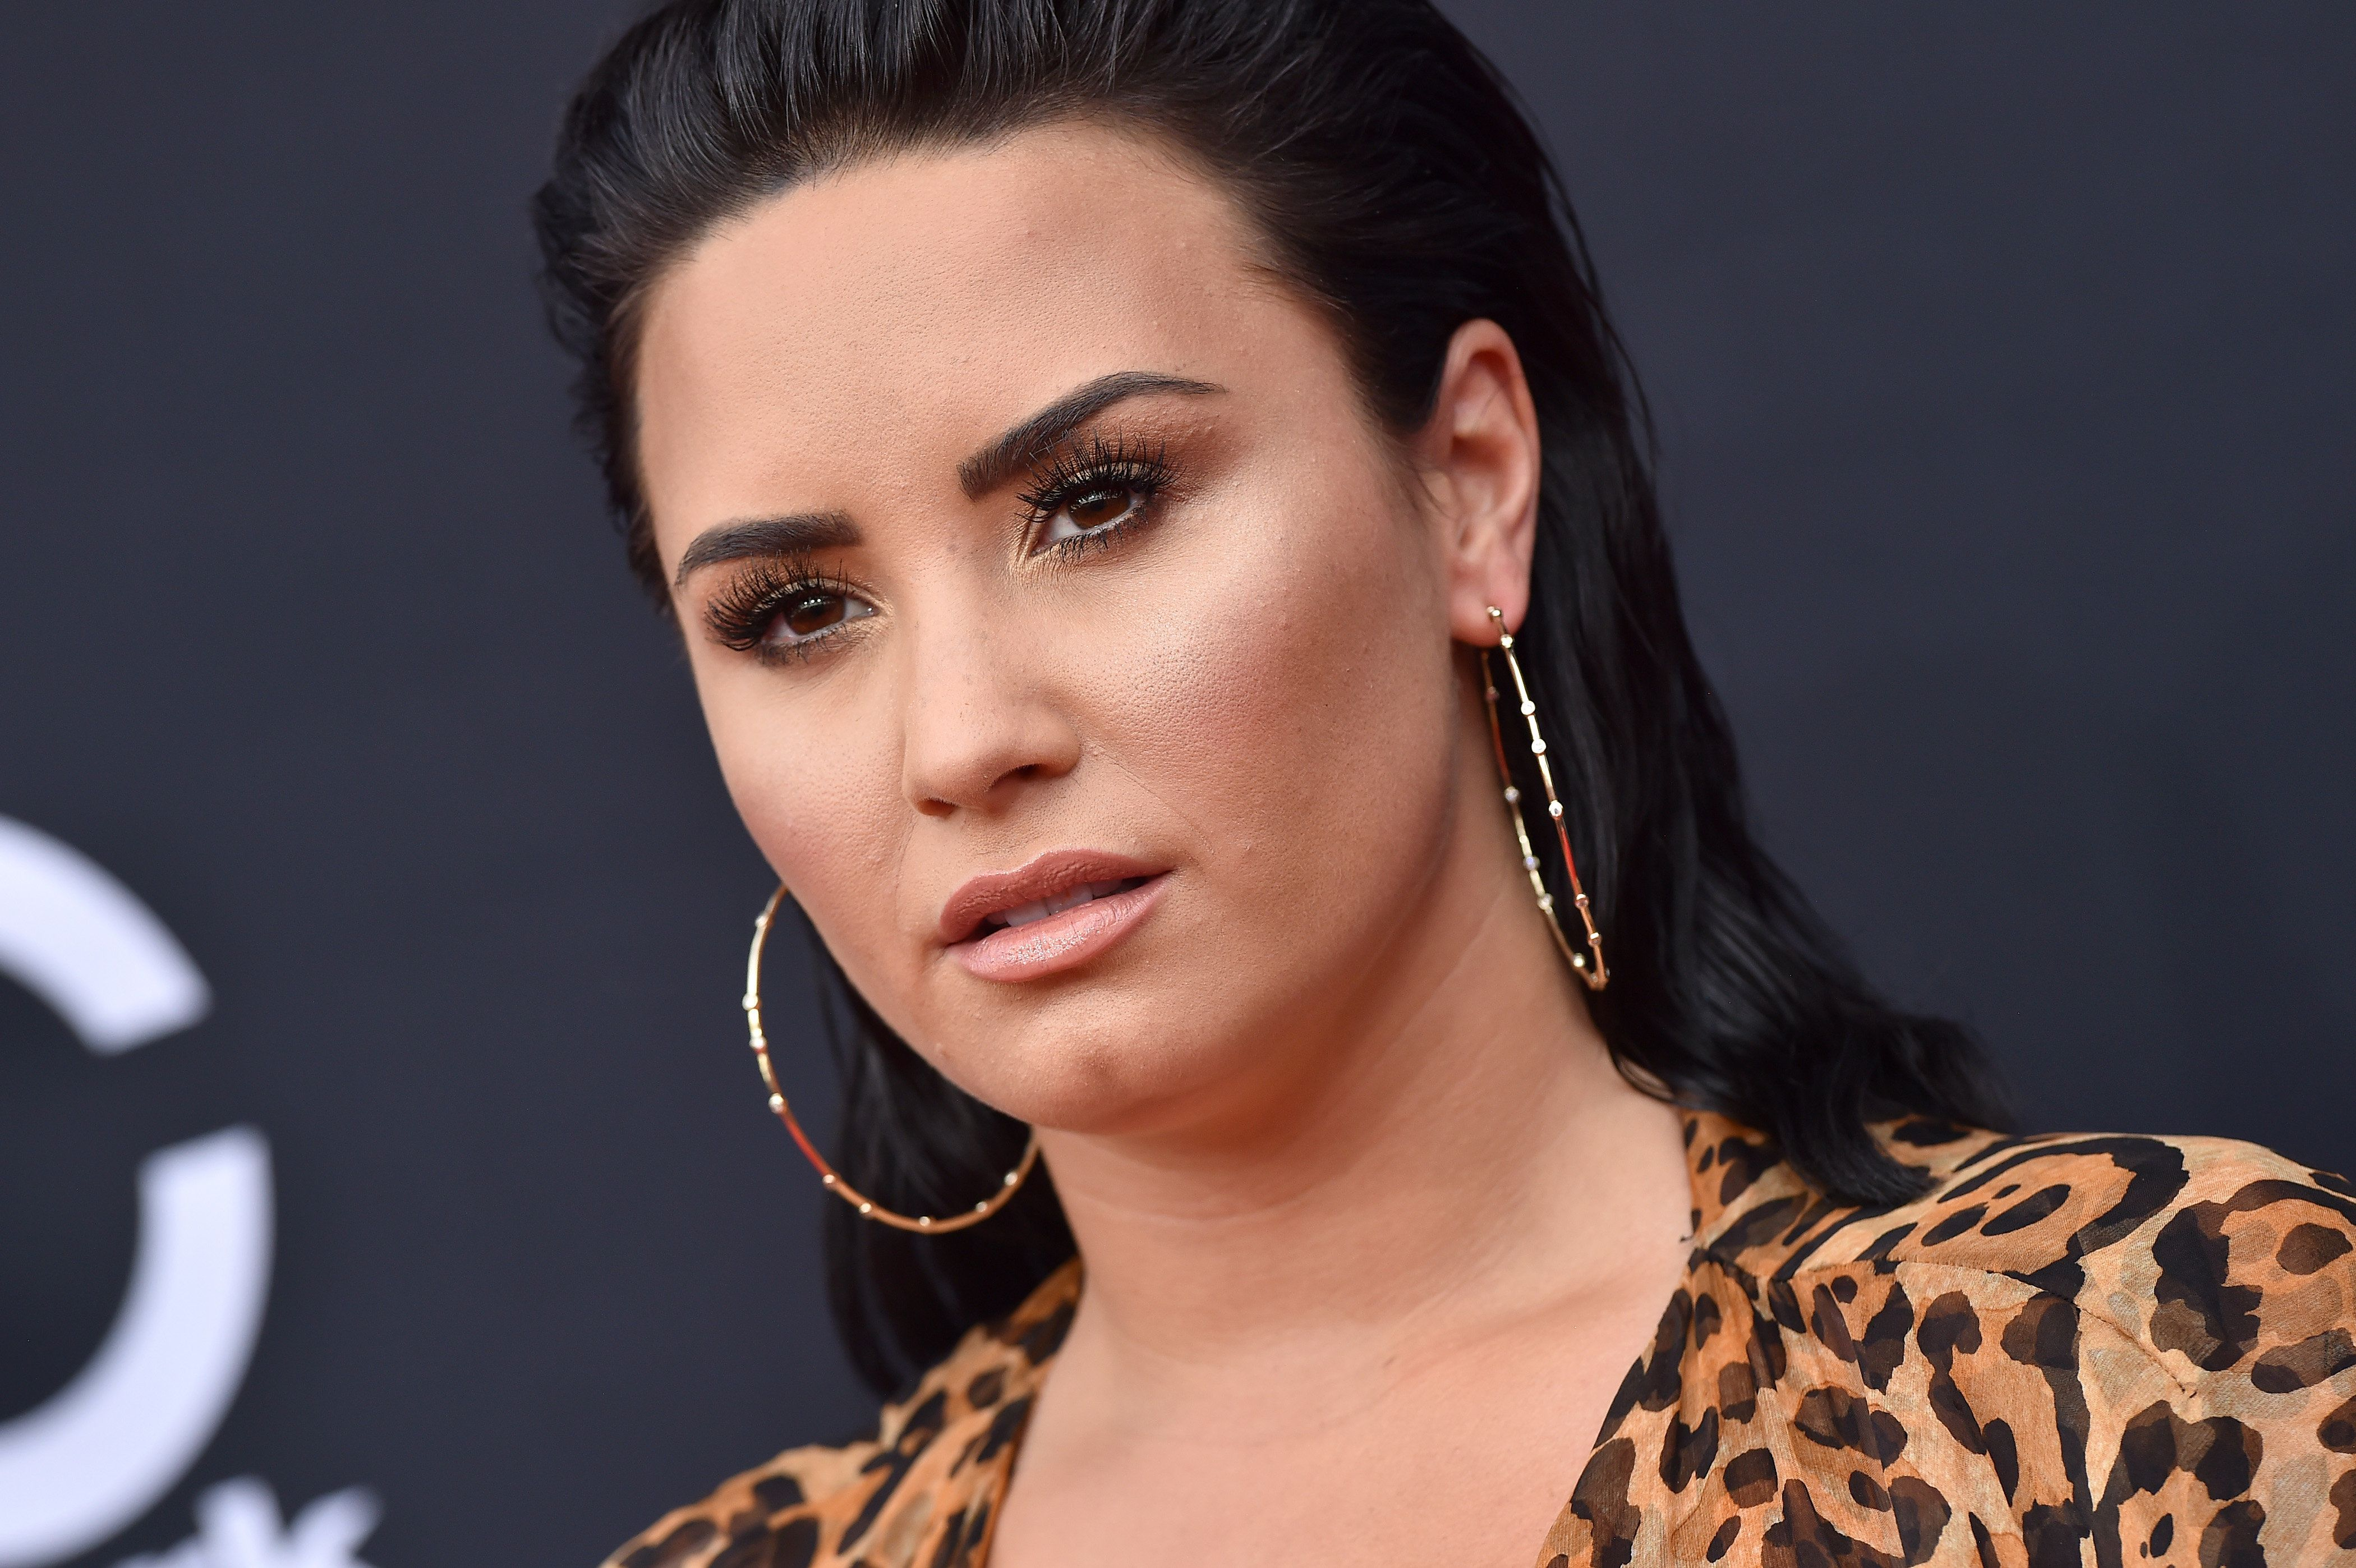 LAS VEGAS, NV - MAY 20:  Recording artist Demi Lovato attends the 2018 Billboard Music Awards at MGM Grand Garden Arena on May 20, 2018 in Las Vegas, Nevada.  (Photo by Axelle/Bauer-Griffin/FilmMagic)